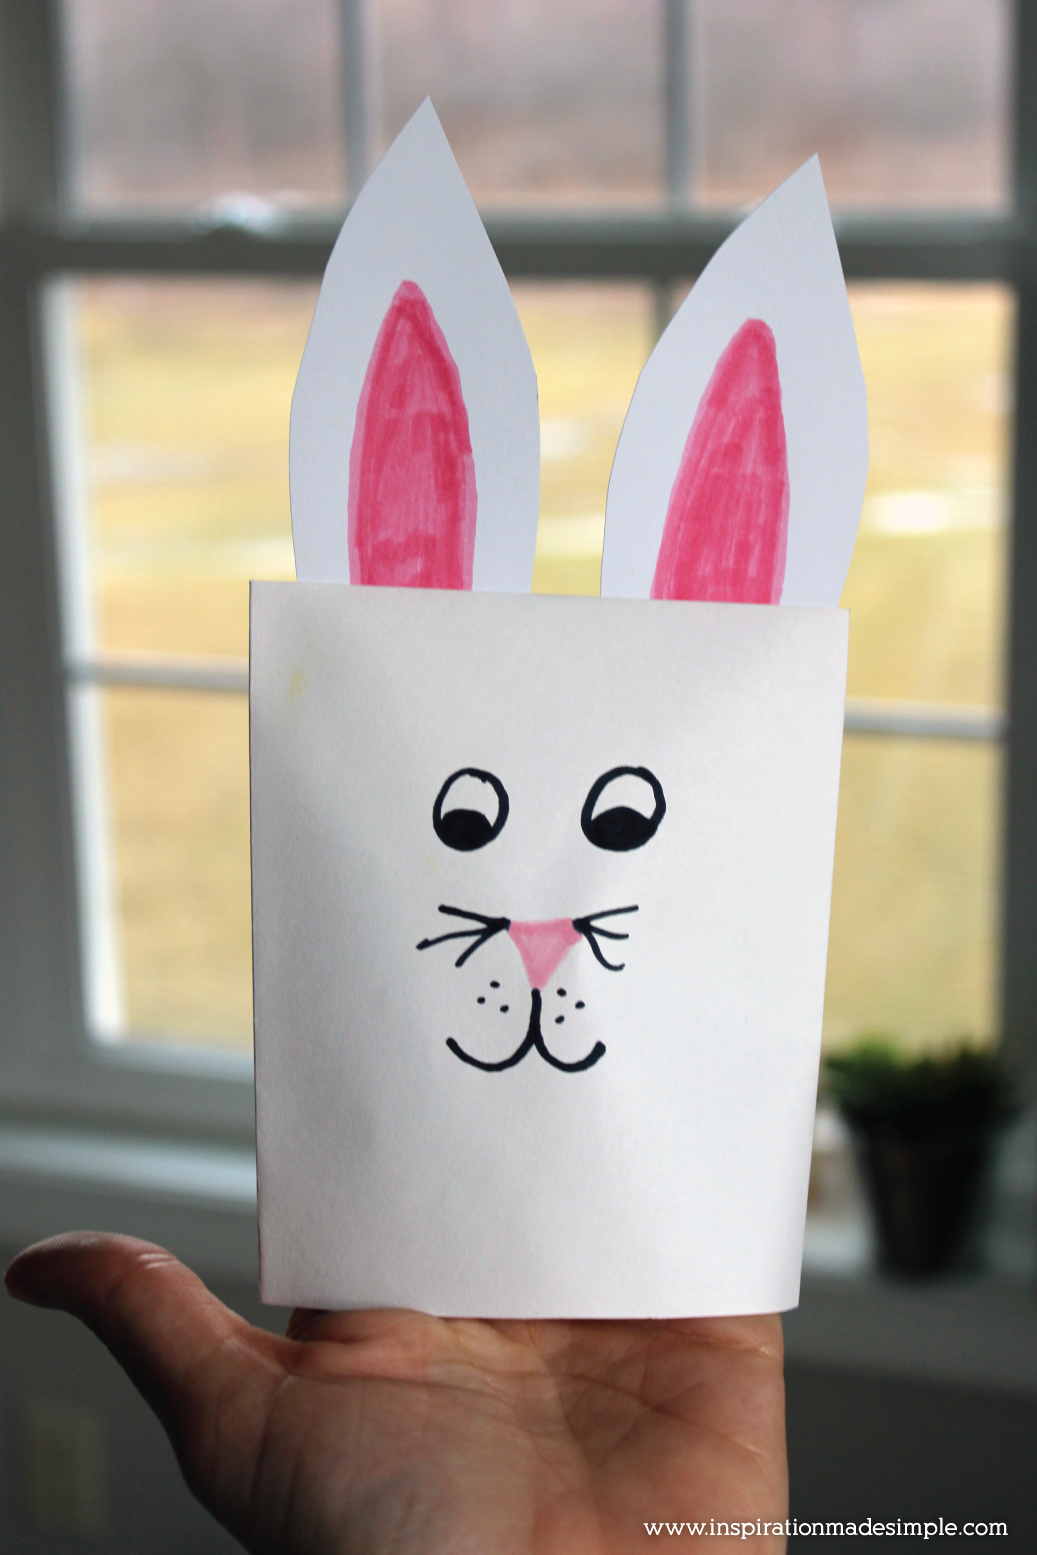 Envelope Puppets are easy to make using supplies you probably already have in your home!